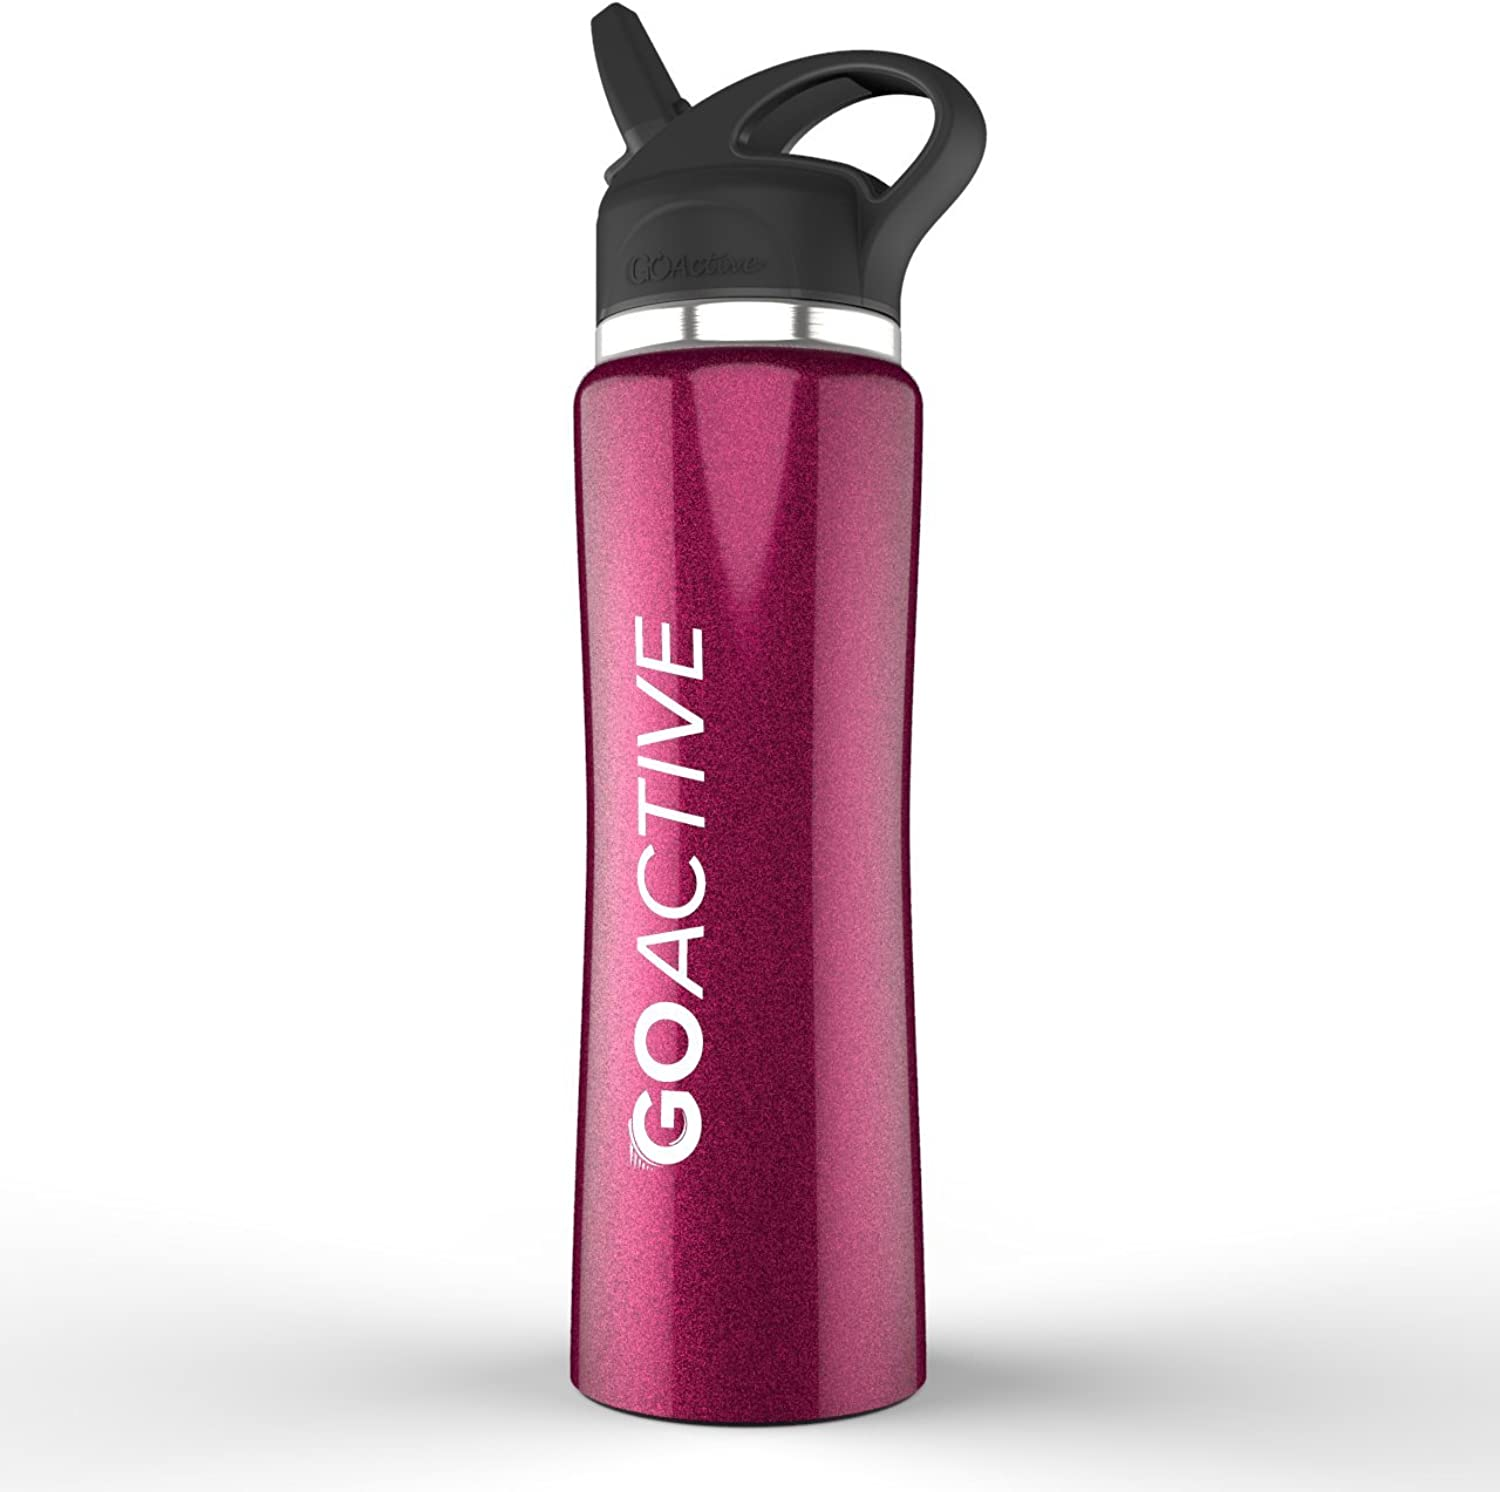 GO Active Stainless Steel Insulated Sport Bottle Features Premium lid with Straw